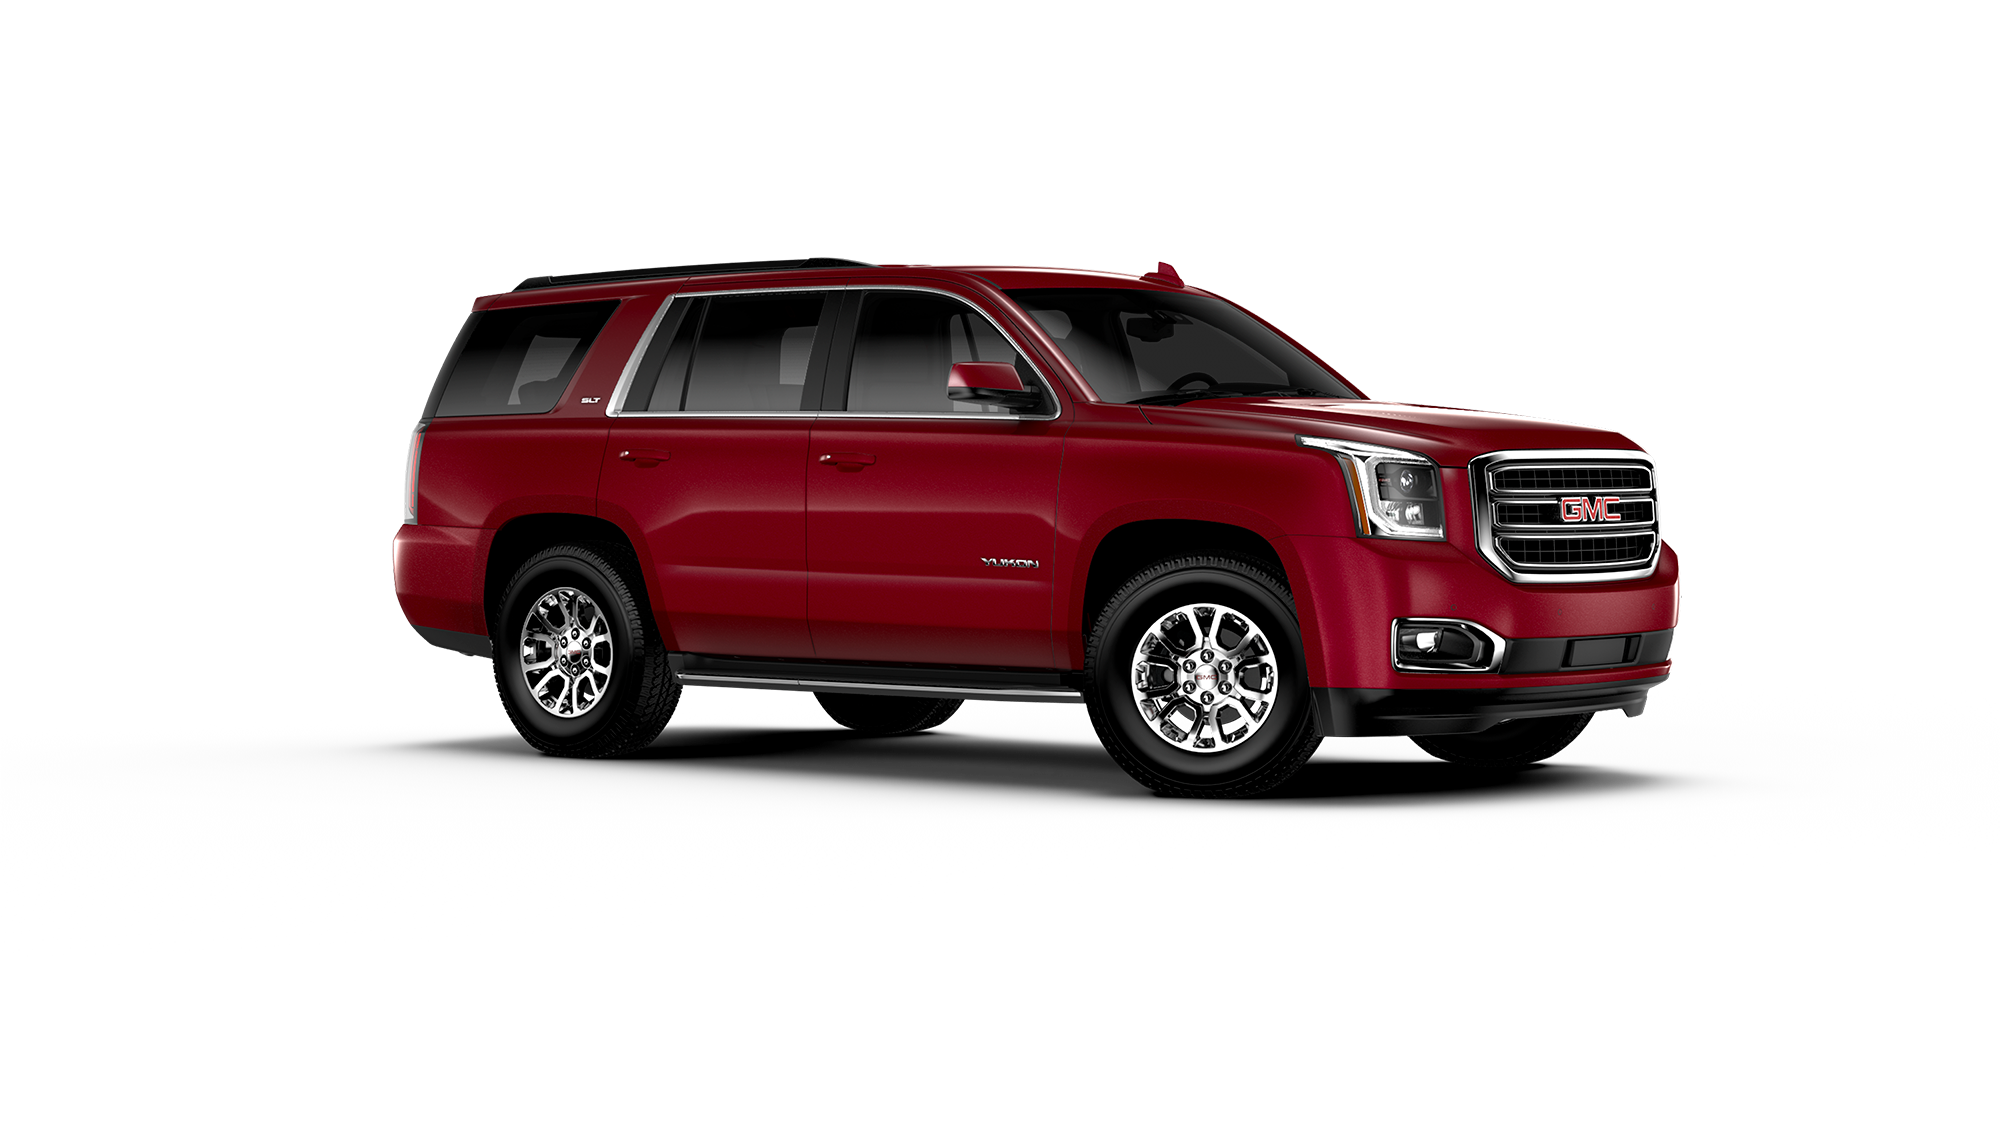 denali gmc detroit terrain first angle auto prevnext show suv look rear left models events